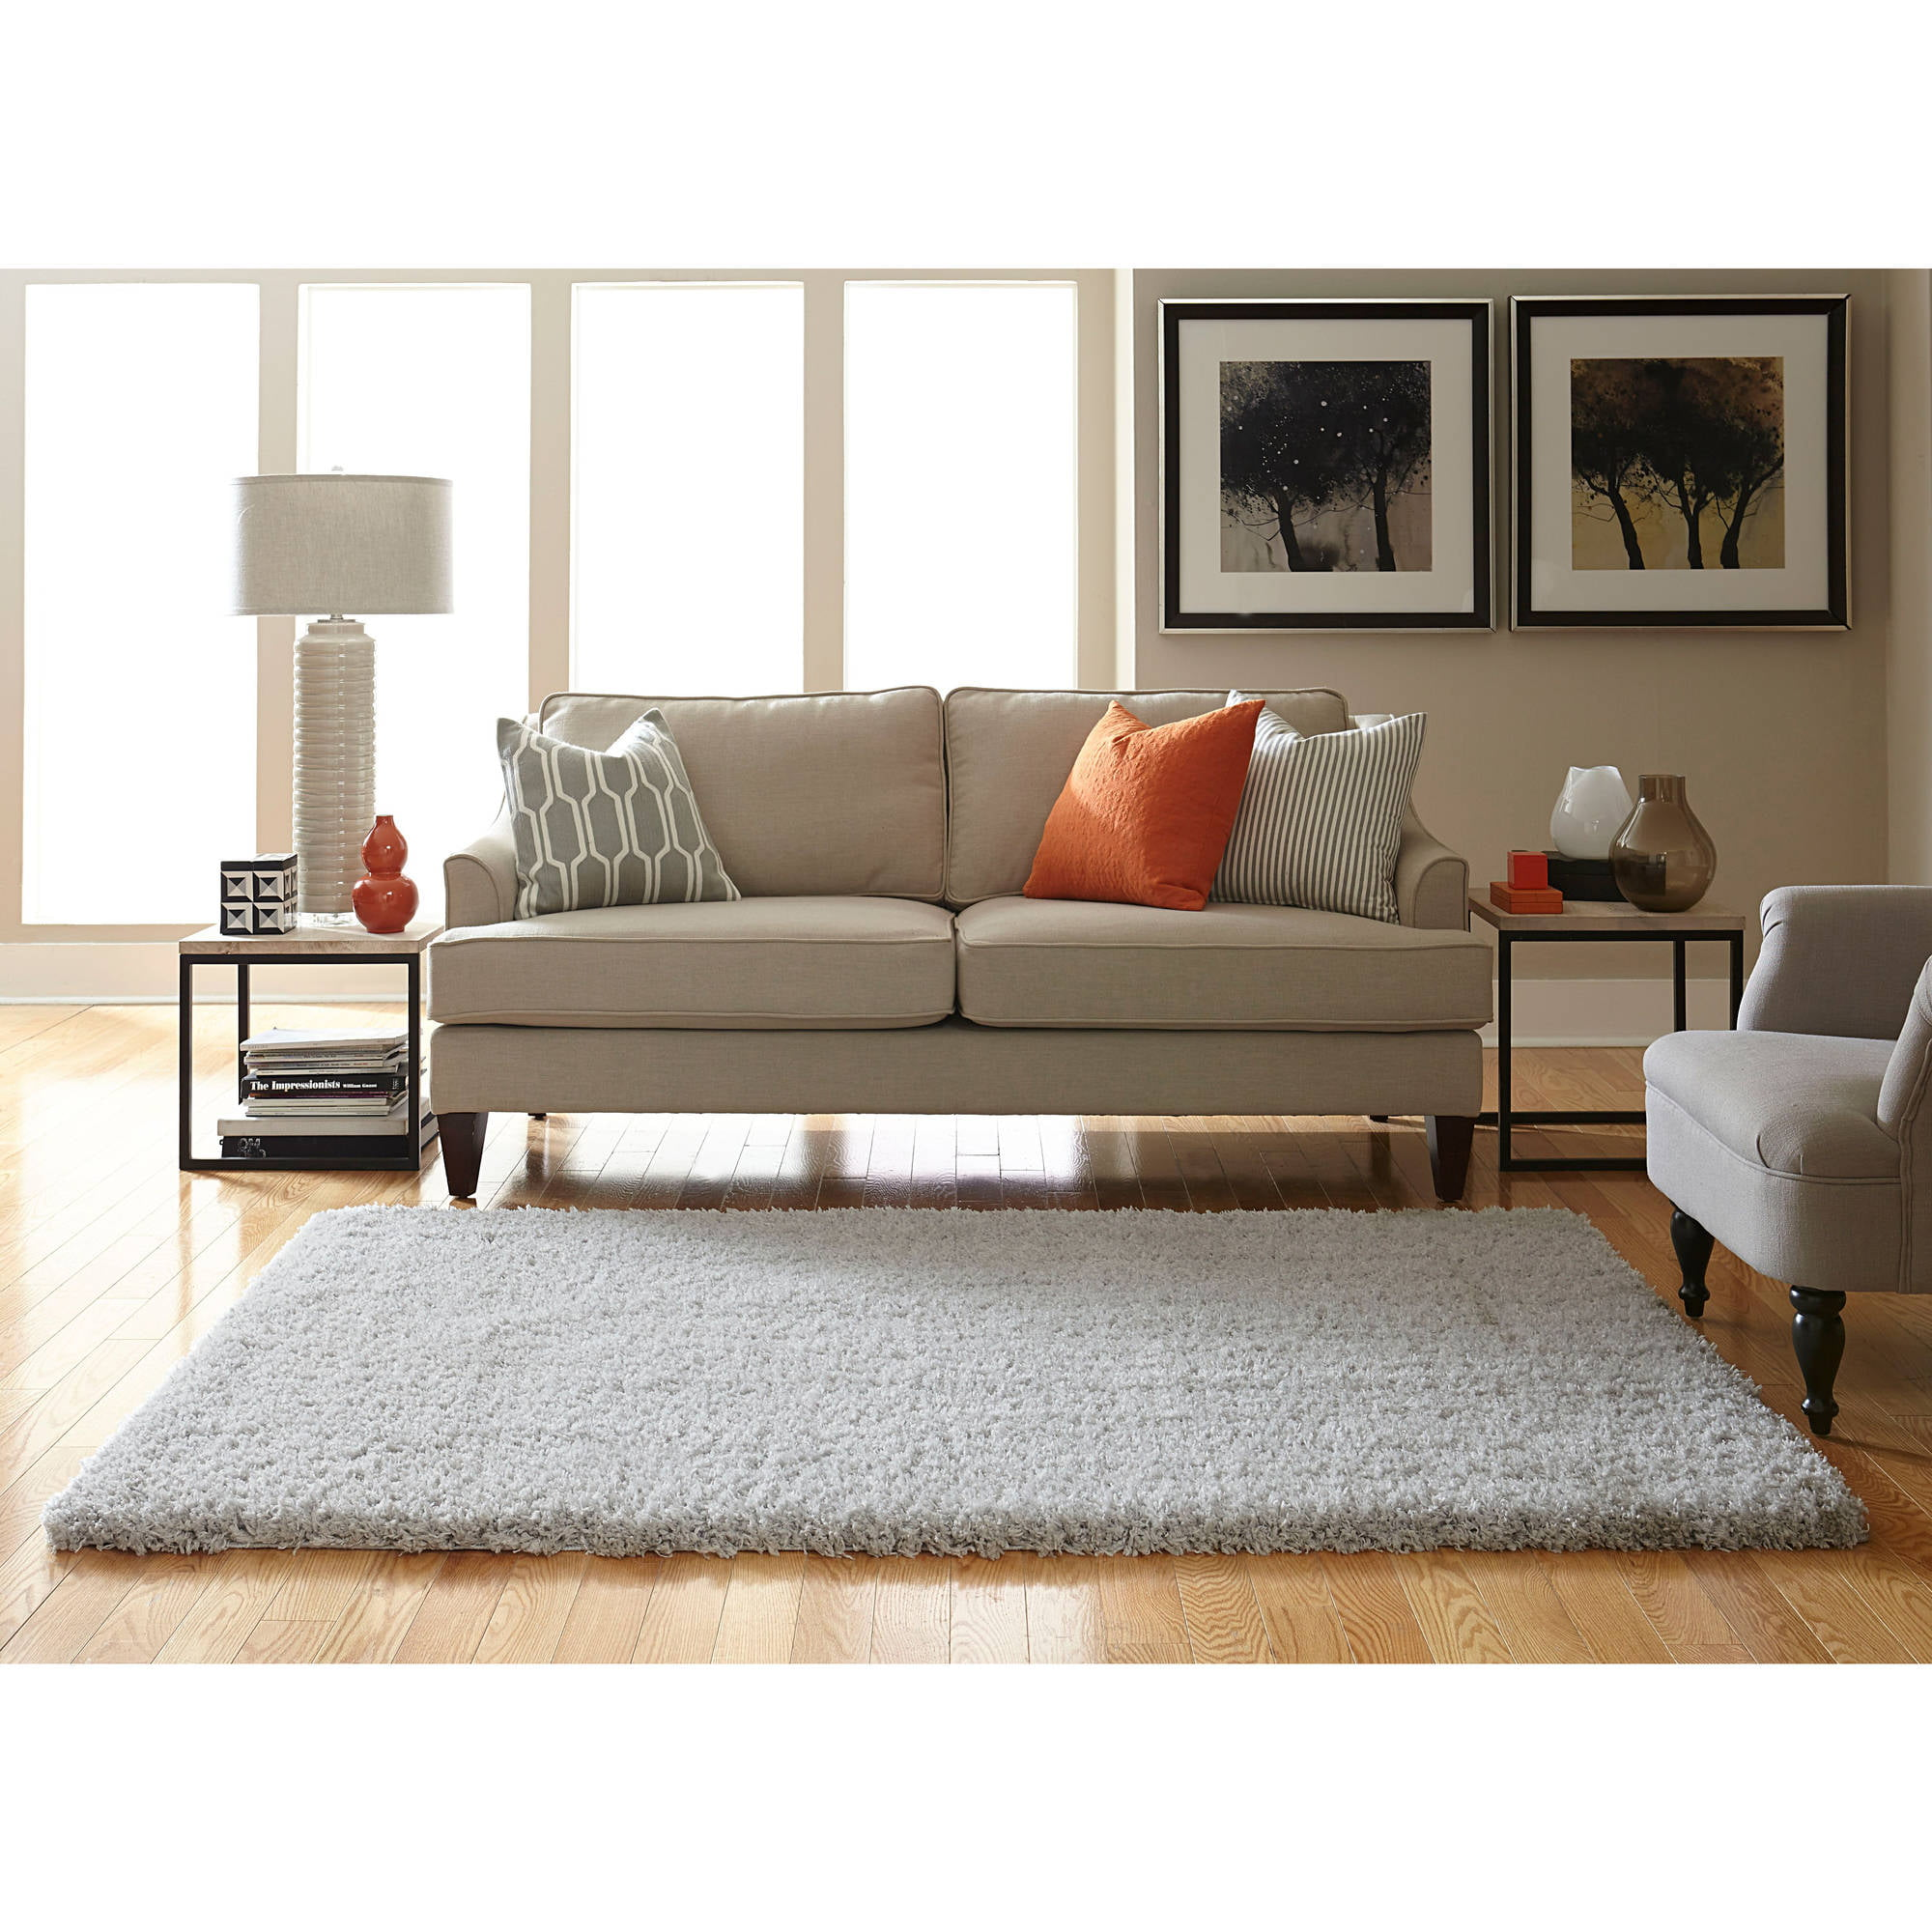 plush online carpet modern white shag store off rug rugs home decor